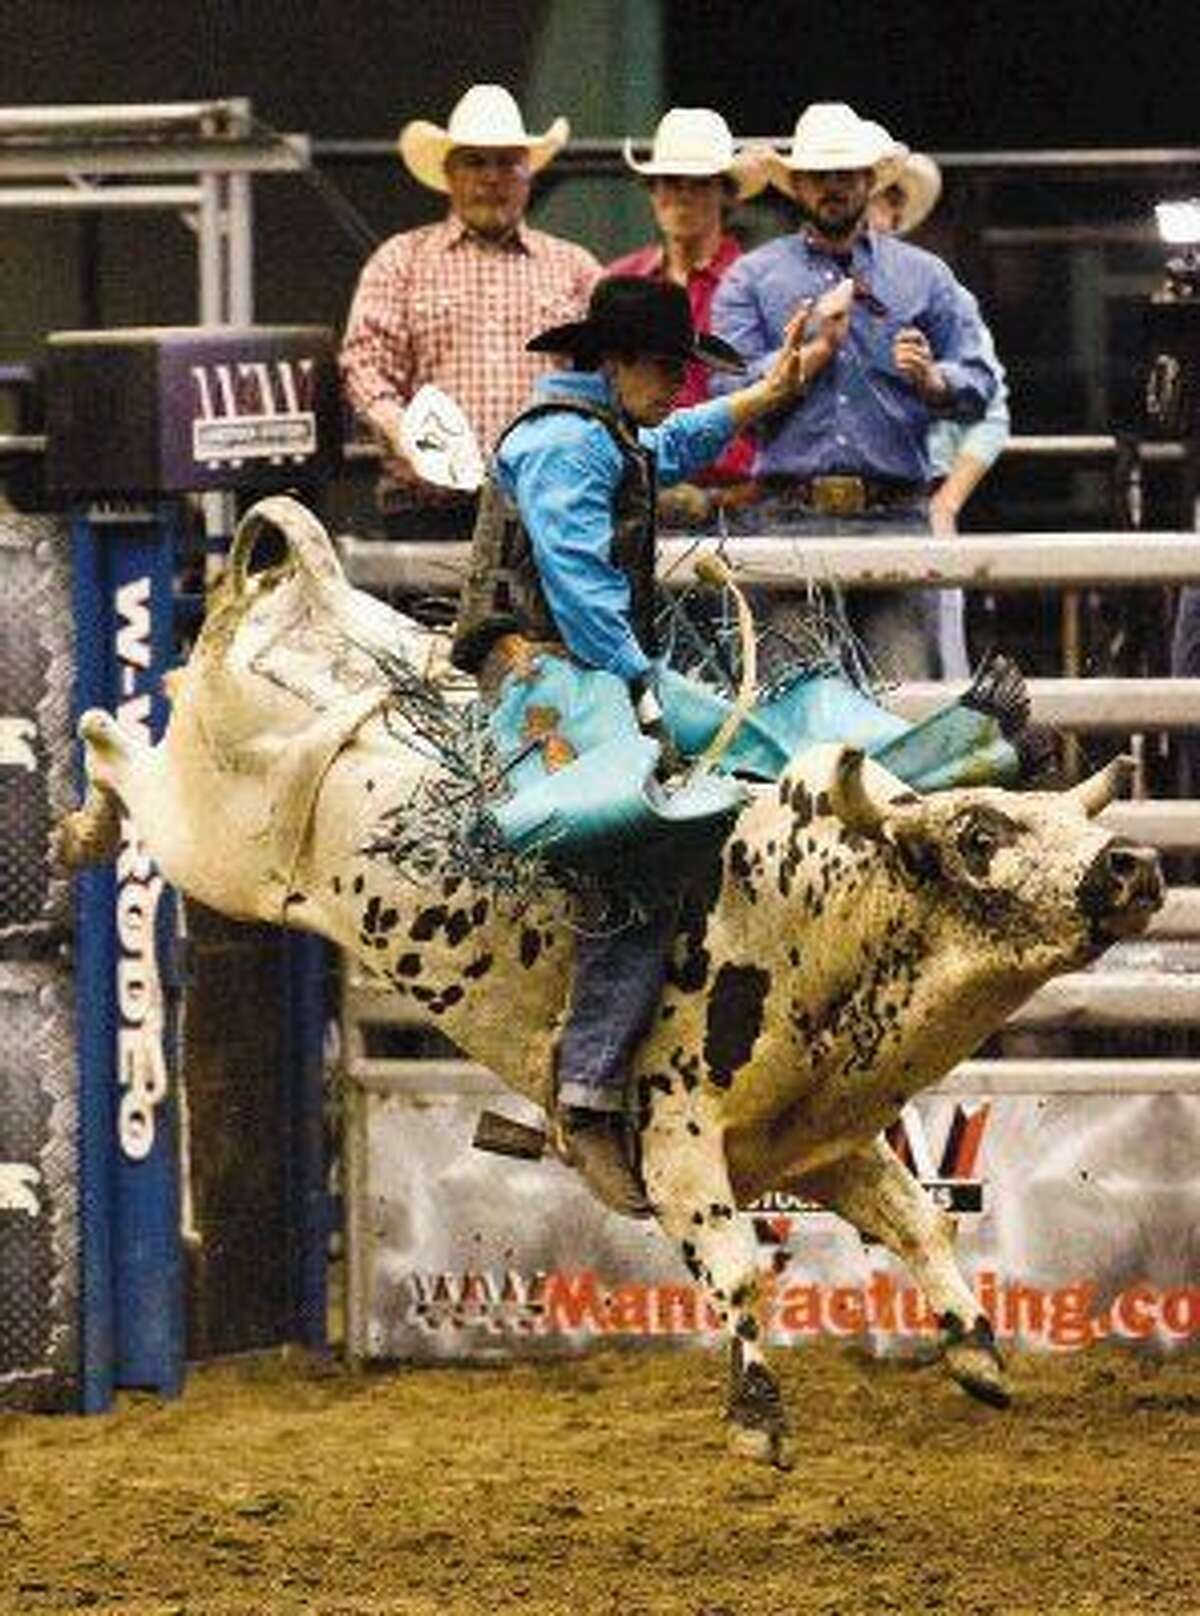 Bull rider Eli Vastbinder, of Statesville, North Carolina, competes during the Champion Bull Riding Conroe Bull Mania at the Lone Star Expo Center Saturday in Conroe, Texas. Go to HCNpics.com to view more photos from the event.